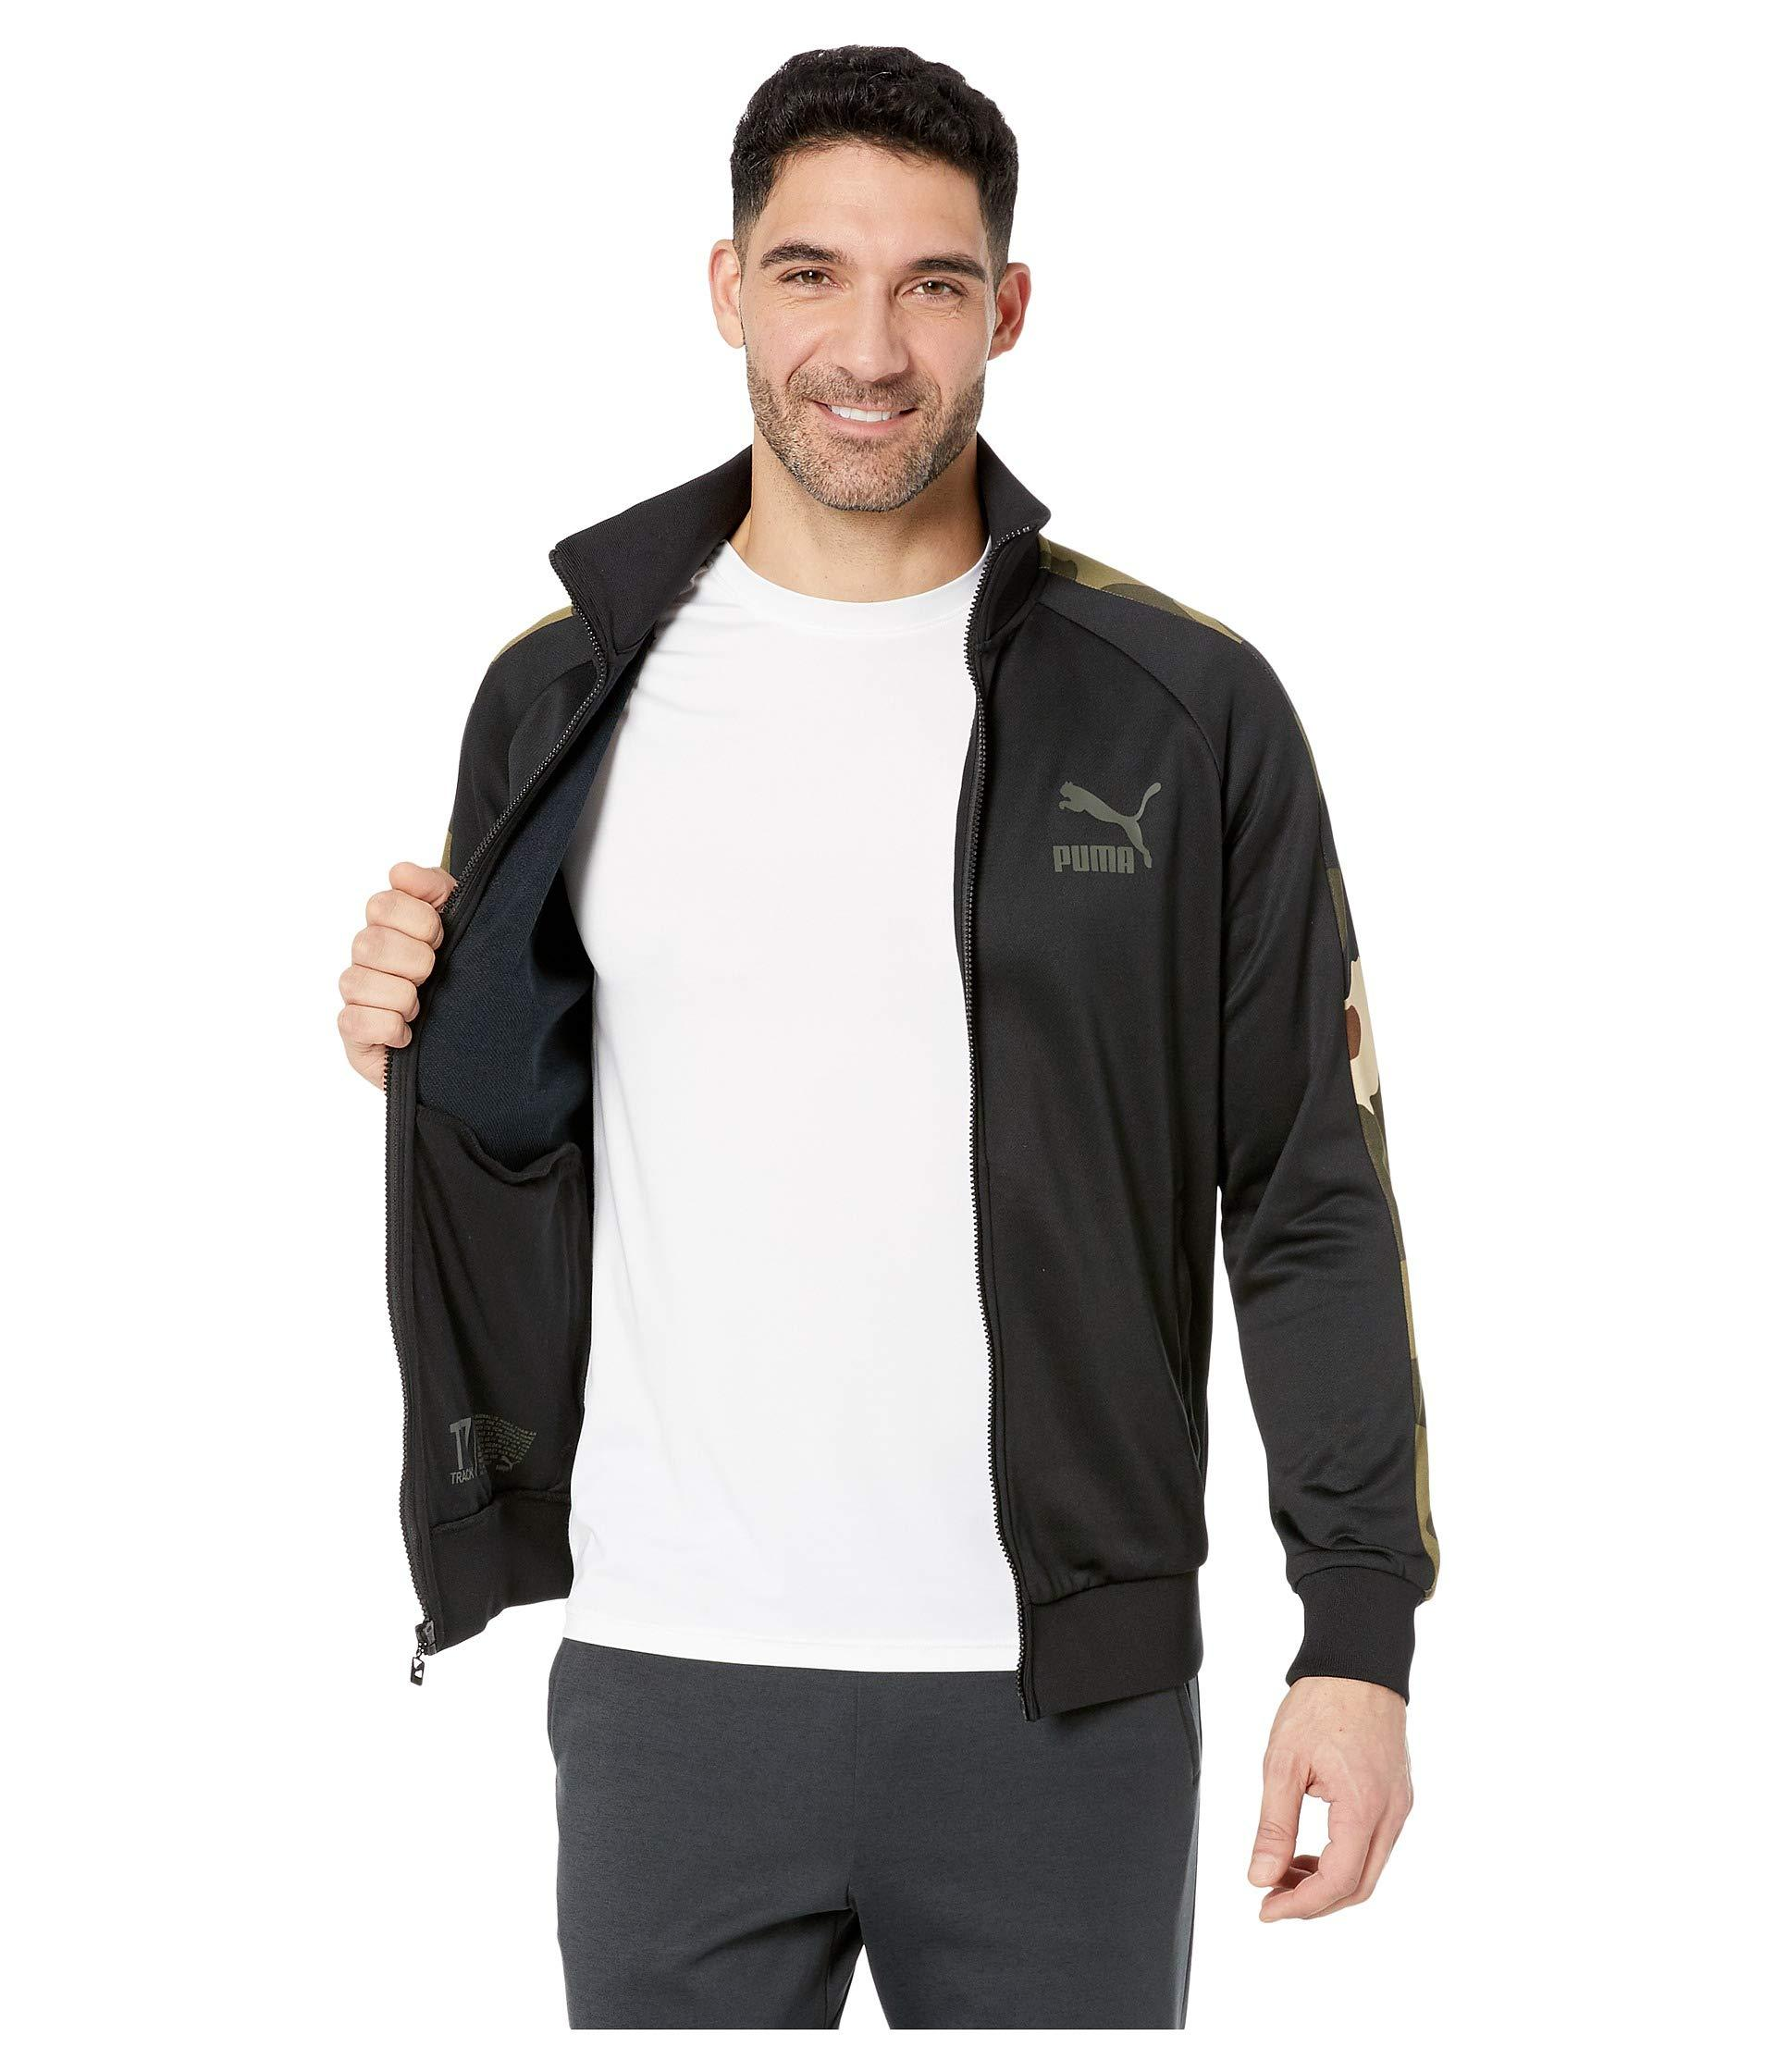 cd92f5228afd Lyst - PUMA Wild Pack T7 Track Jacket in Black for Men - Save 8%